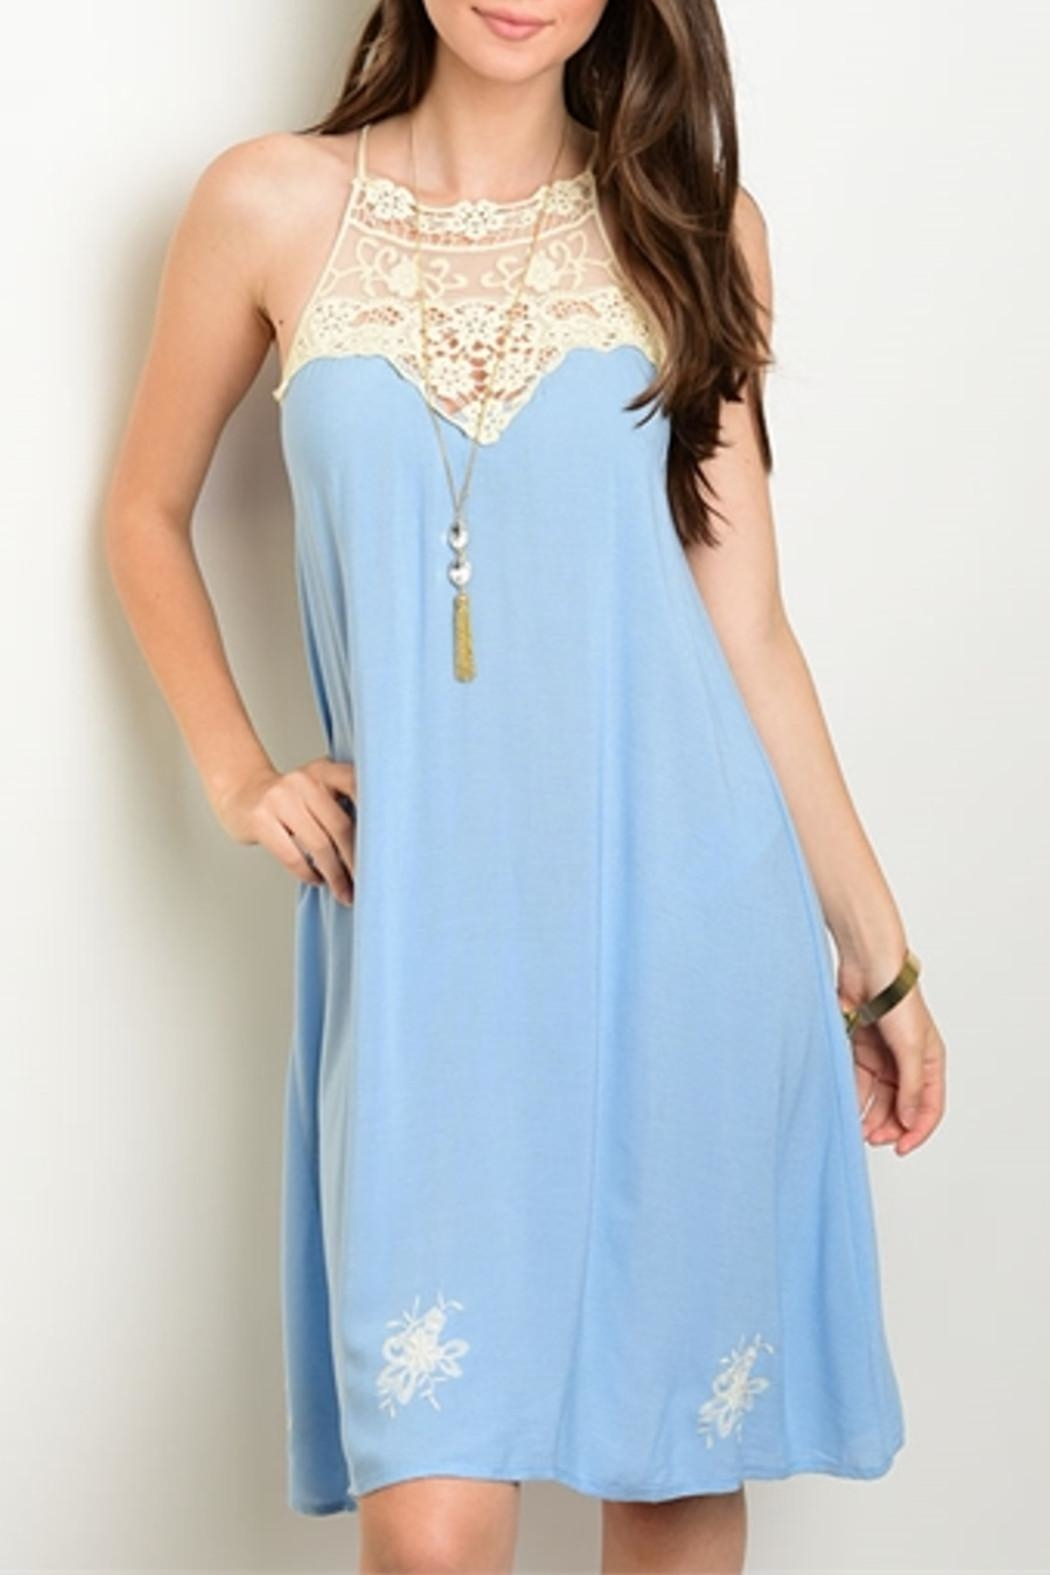 Dulce Carola Sky Blue Dress - Main Image